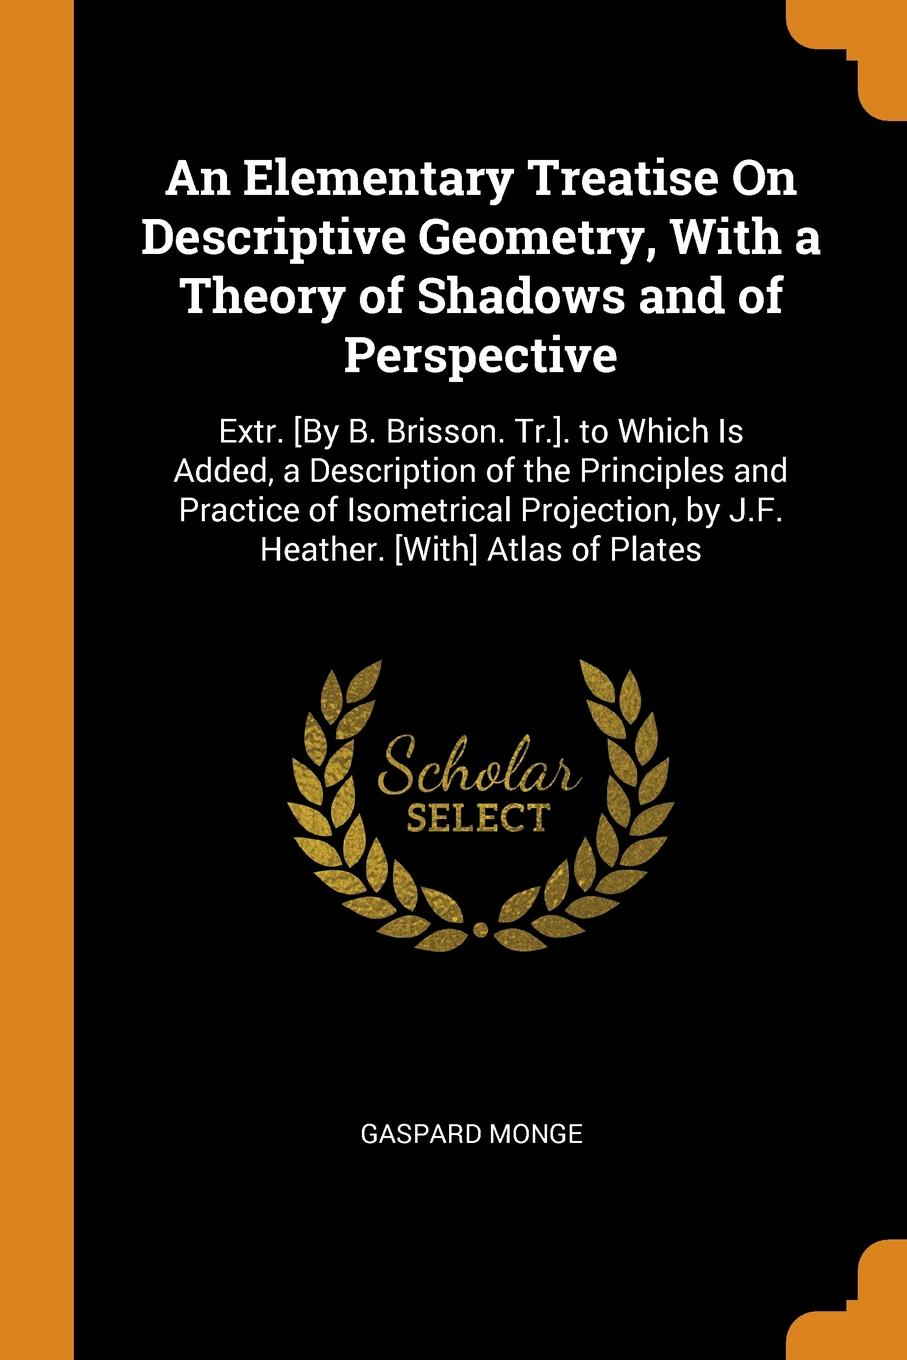 цены Gaspard Monge An Elementary Treatise On Descriptive Geometry, With a Theory of Shadows and of Perspective. Extr. .By B. Brisson. Tr... to Which Is Added, a Description of the Principles and Practice of Isometrical Projection, by J.F. Heather. .With. Atlas of Pl...